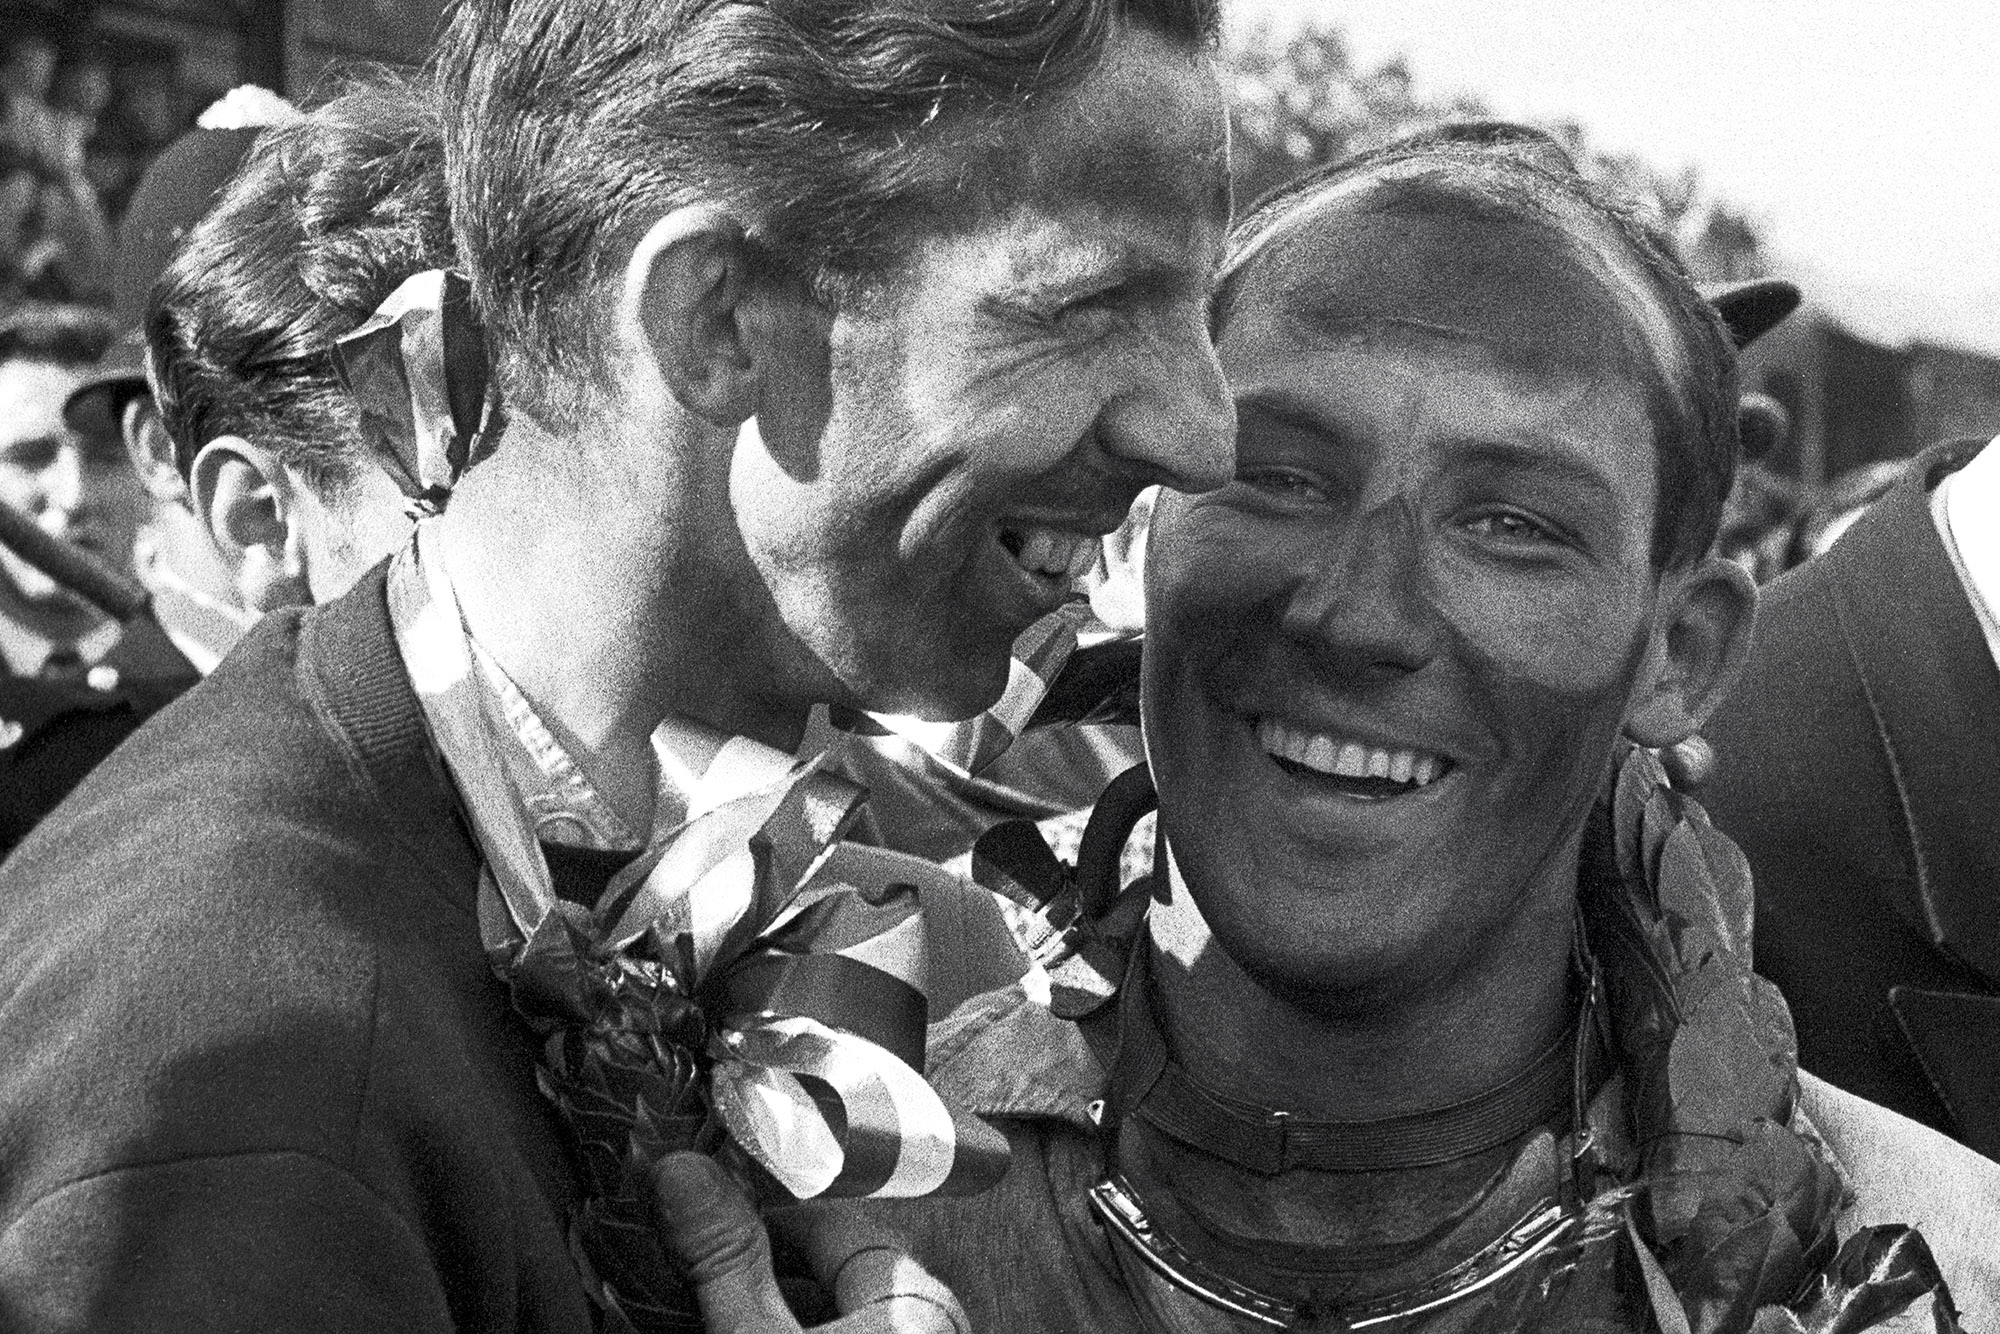 Stirling Moss with Tony Brooks